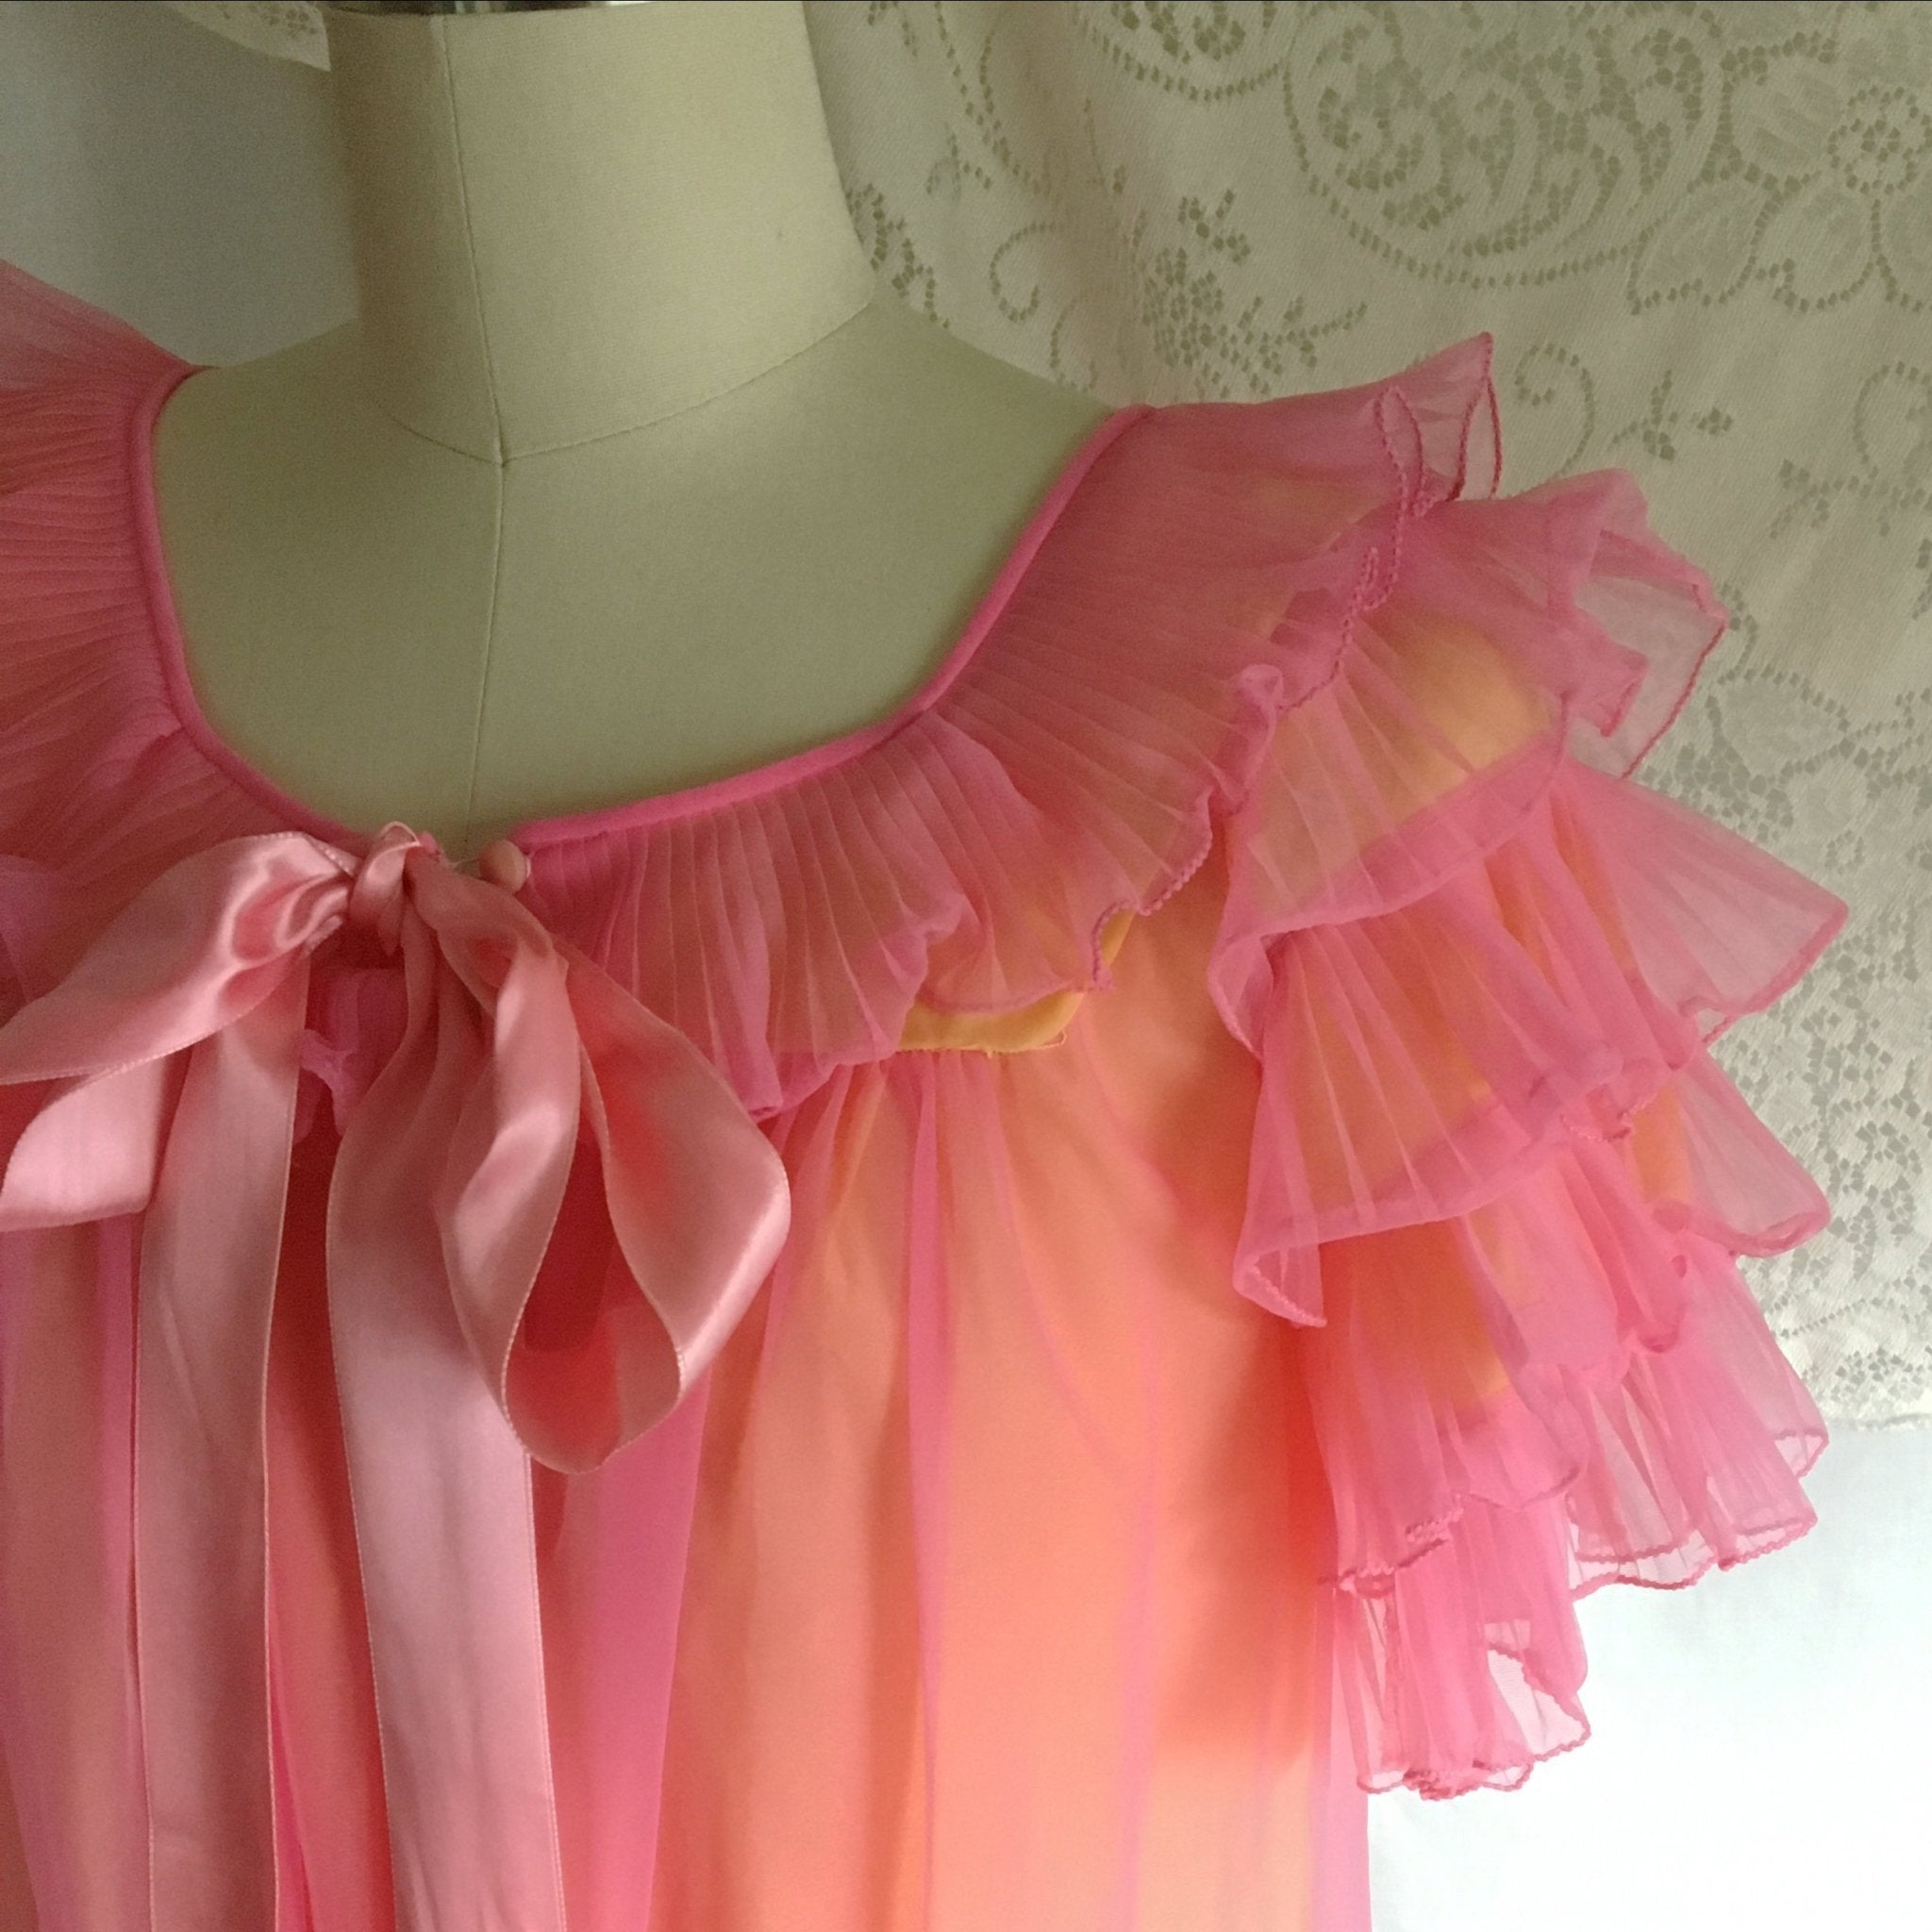 Vintage 1960's Peignoir Set | Pink Ruffled Chiffon over Yellow Nylon | Chevette | Size S, M - Daggers & Dames